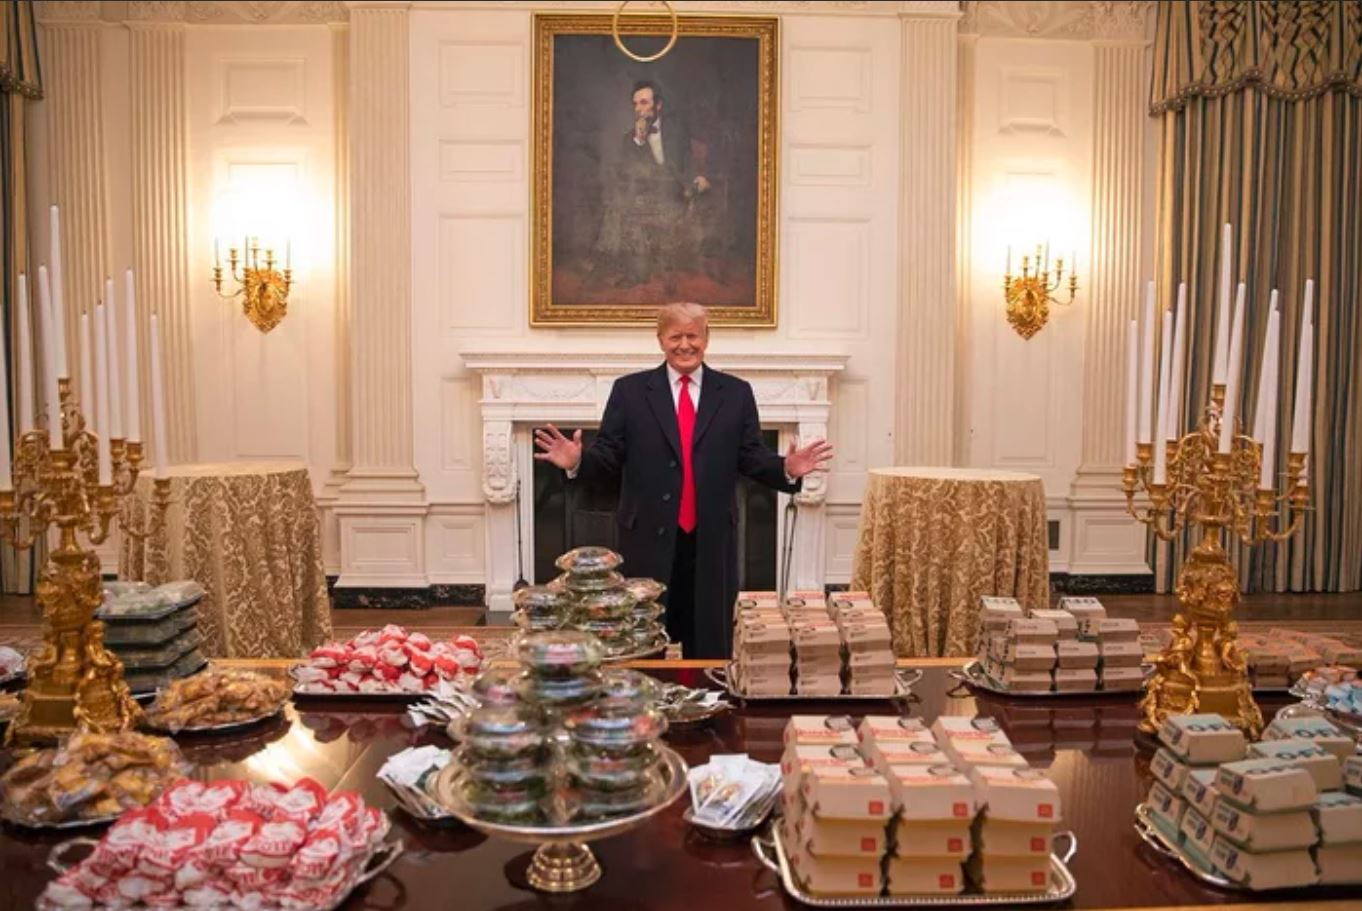 Trump serves McDonald's on silver platters at White House lunch for college football champs